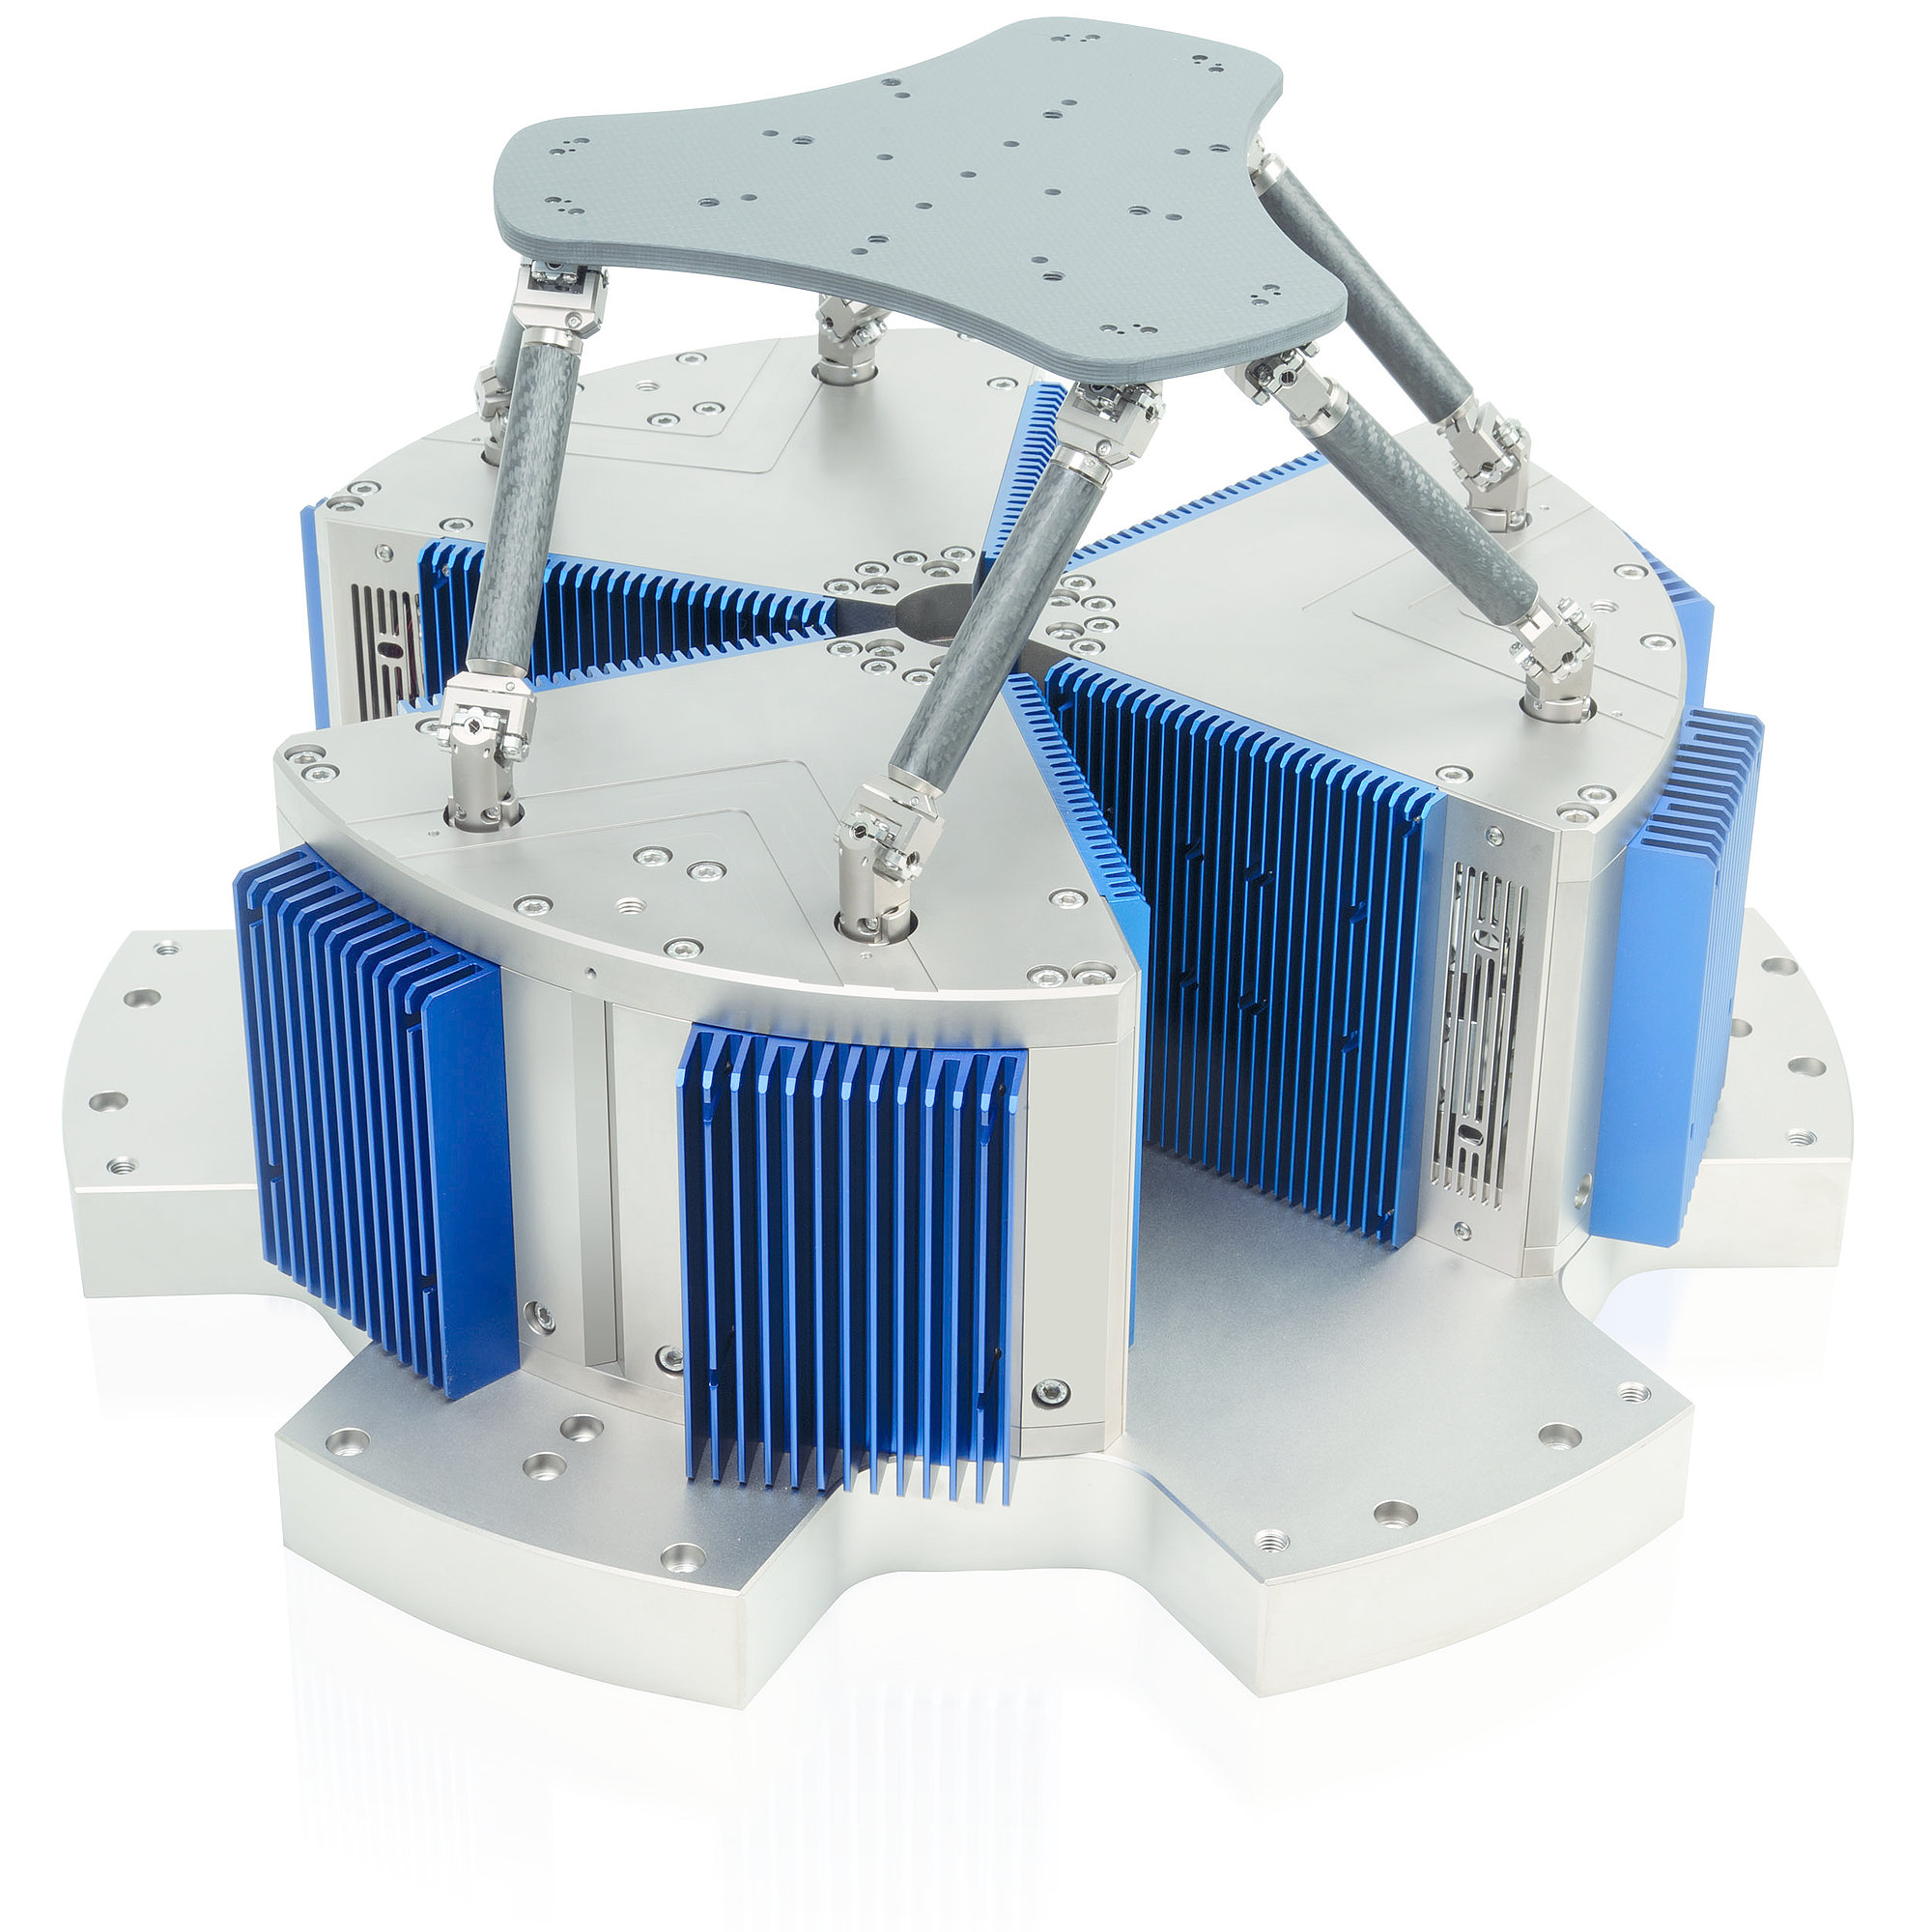 H-860 6-Axis Motion Hexapod